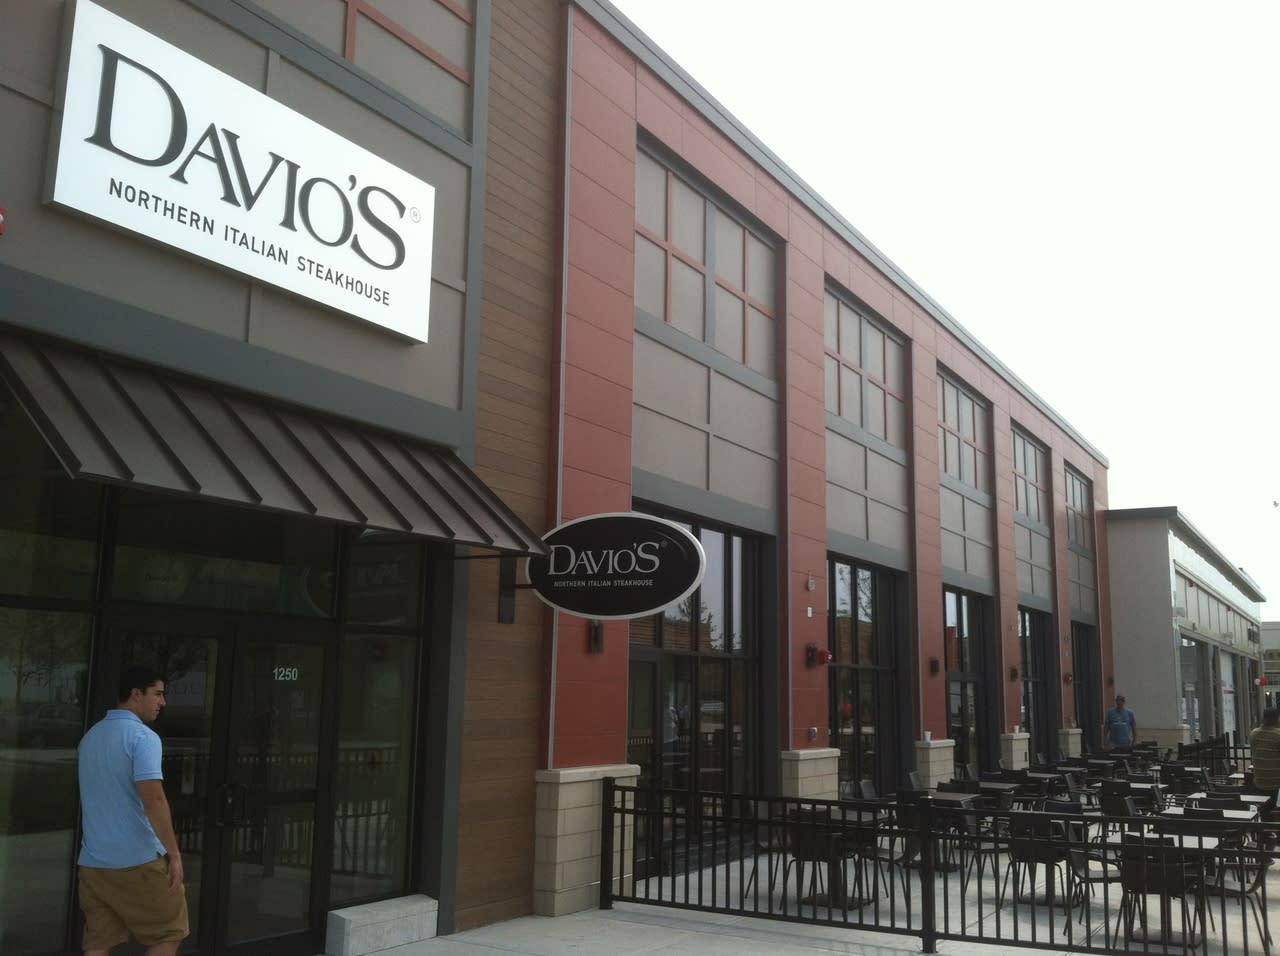 Davio's Northern Italian Steakhouse - Lynnfield